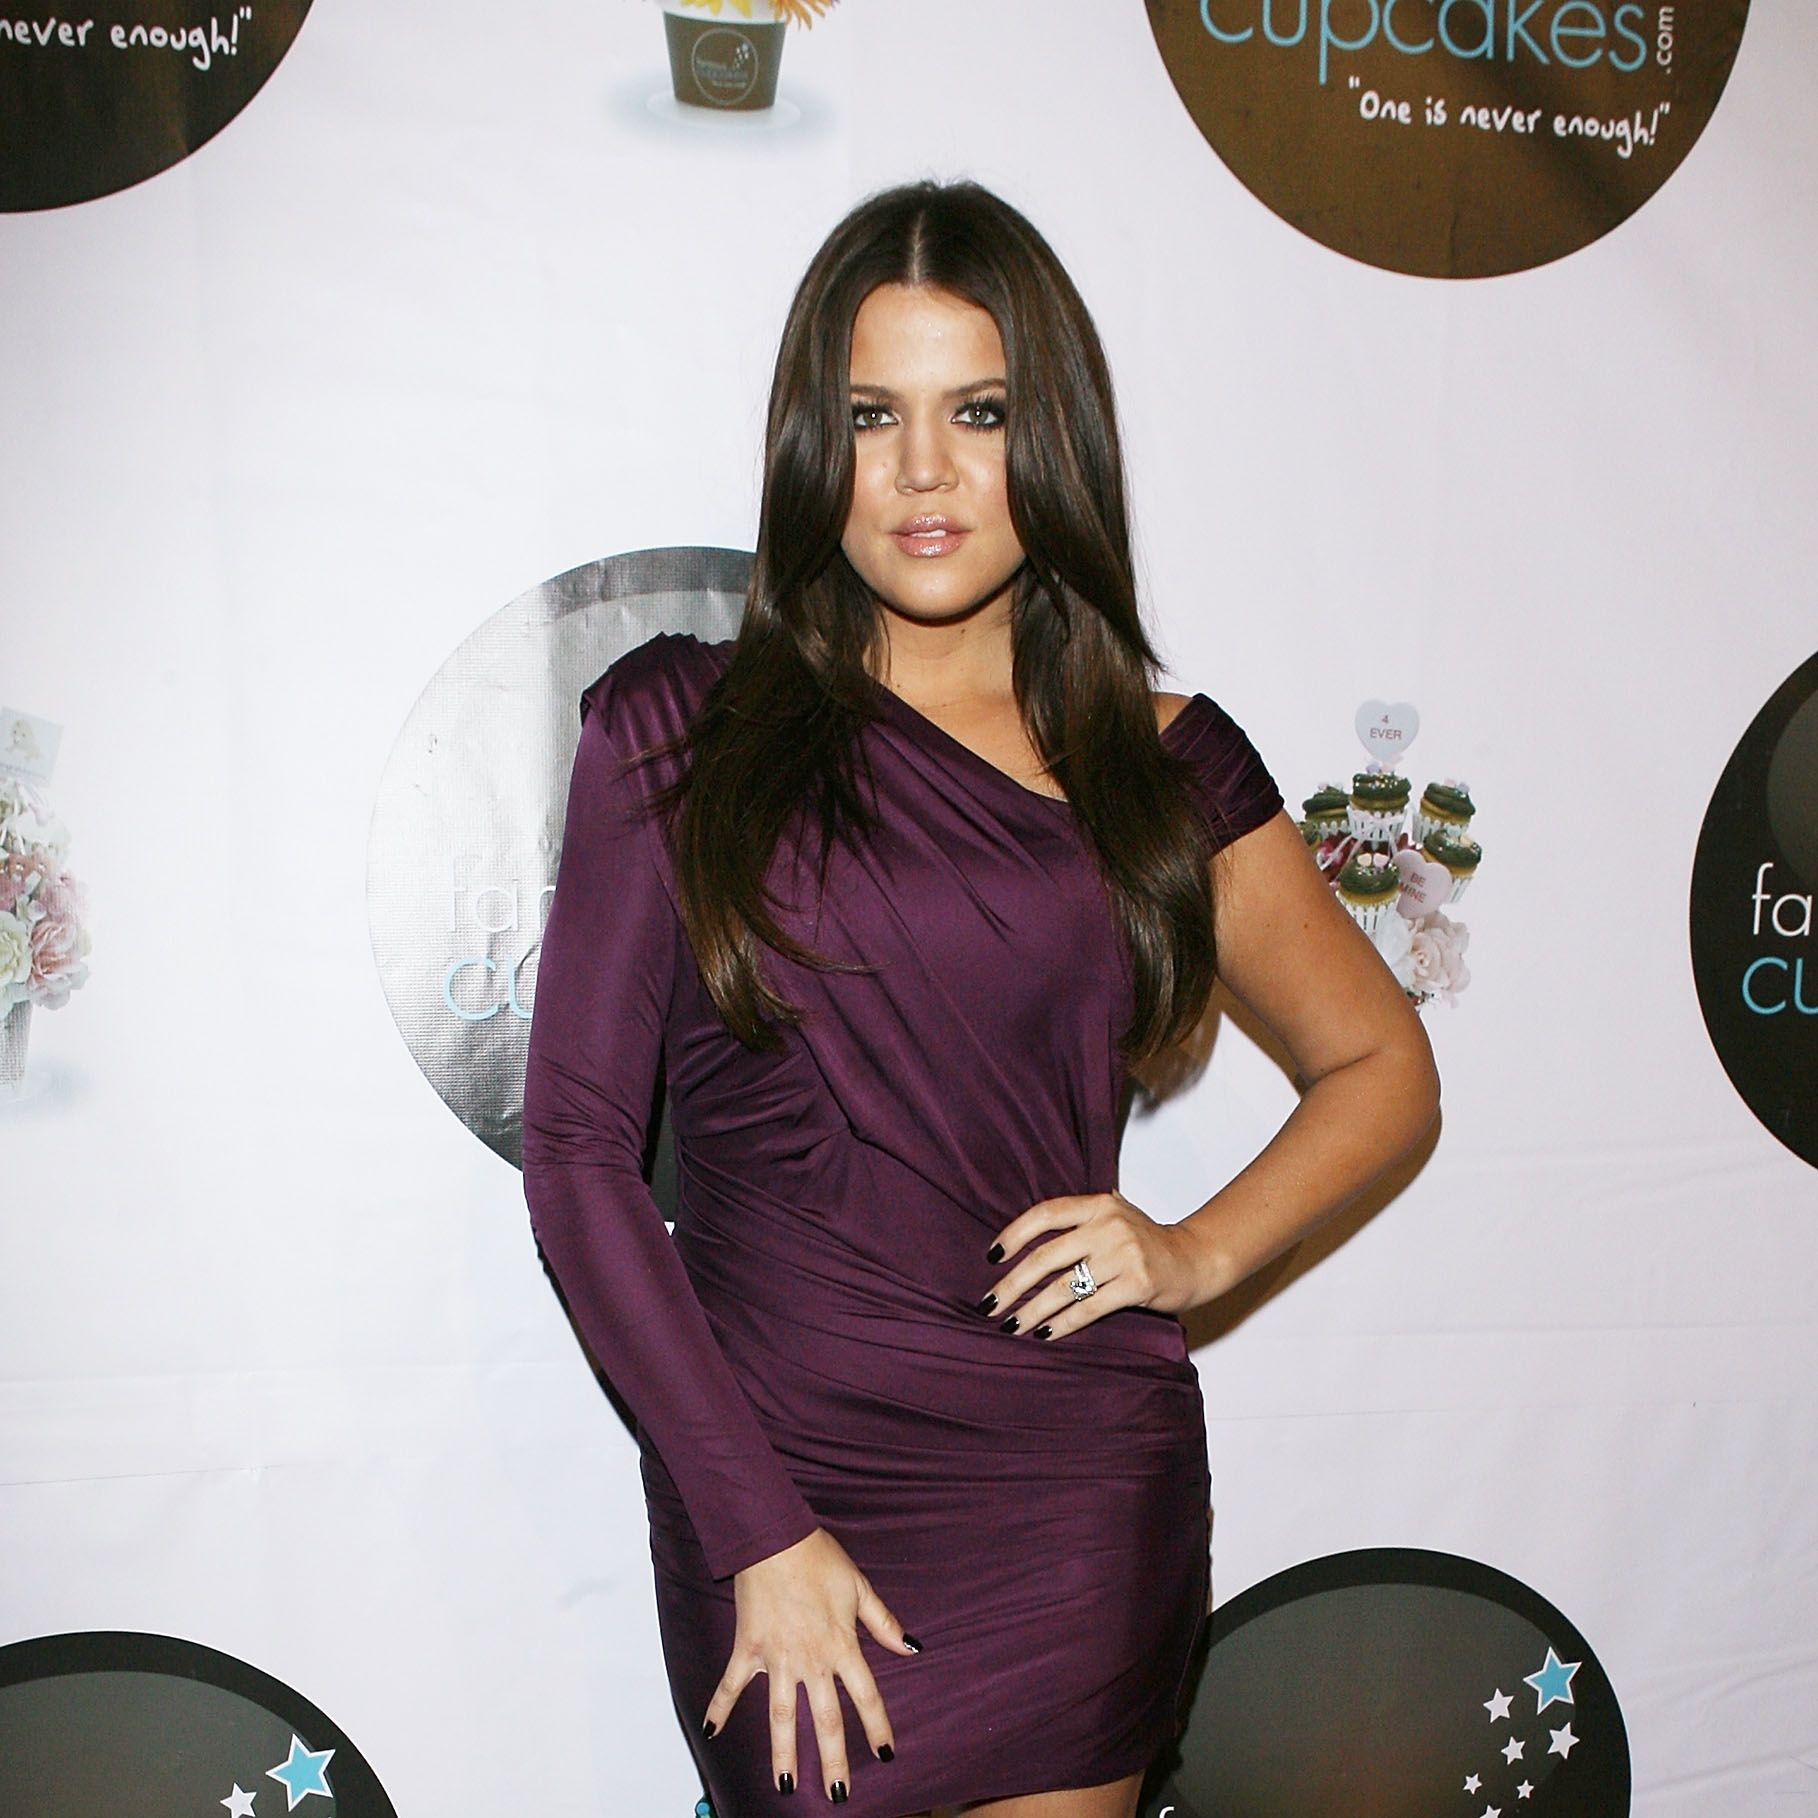 We love this deep berry hue on Khloe's sunkissed skin tone - and her figure really rocks the asymmetrical shape!